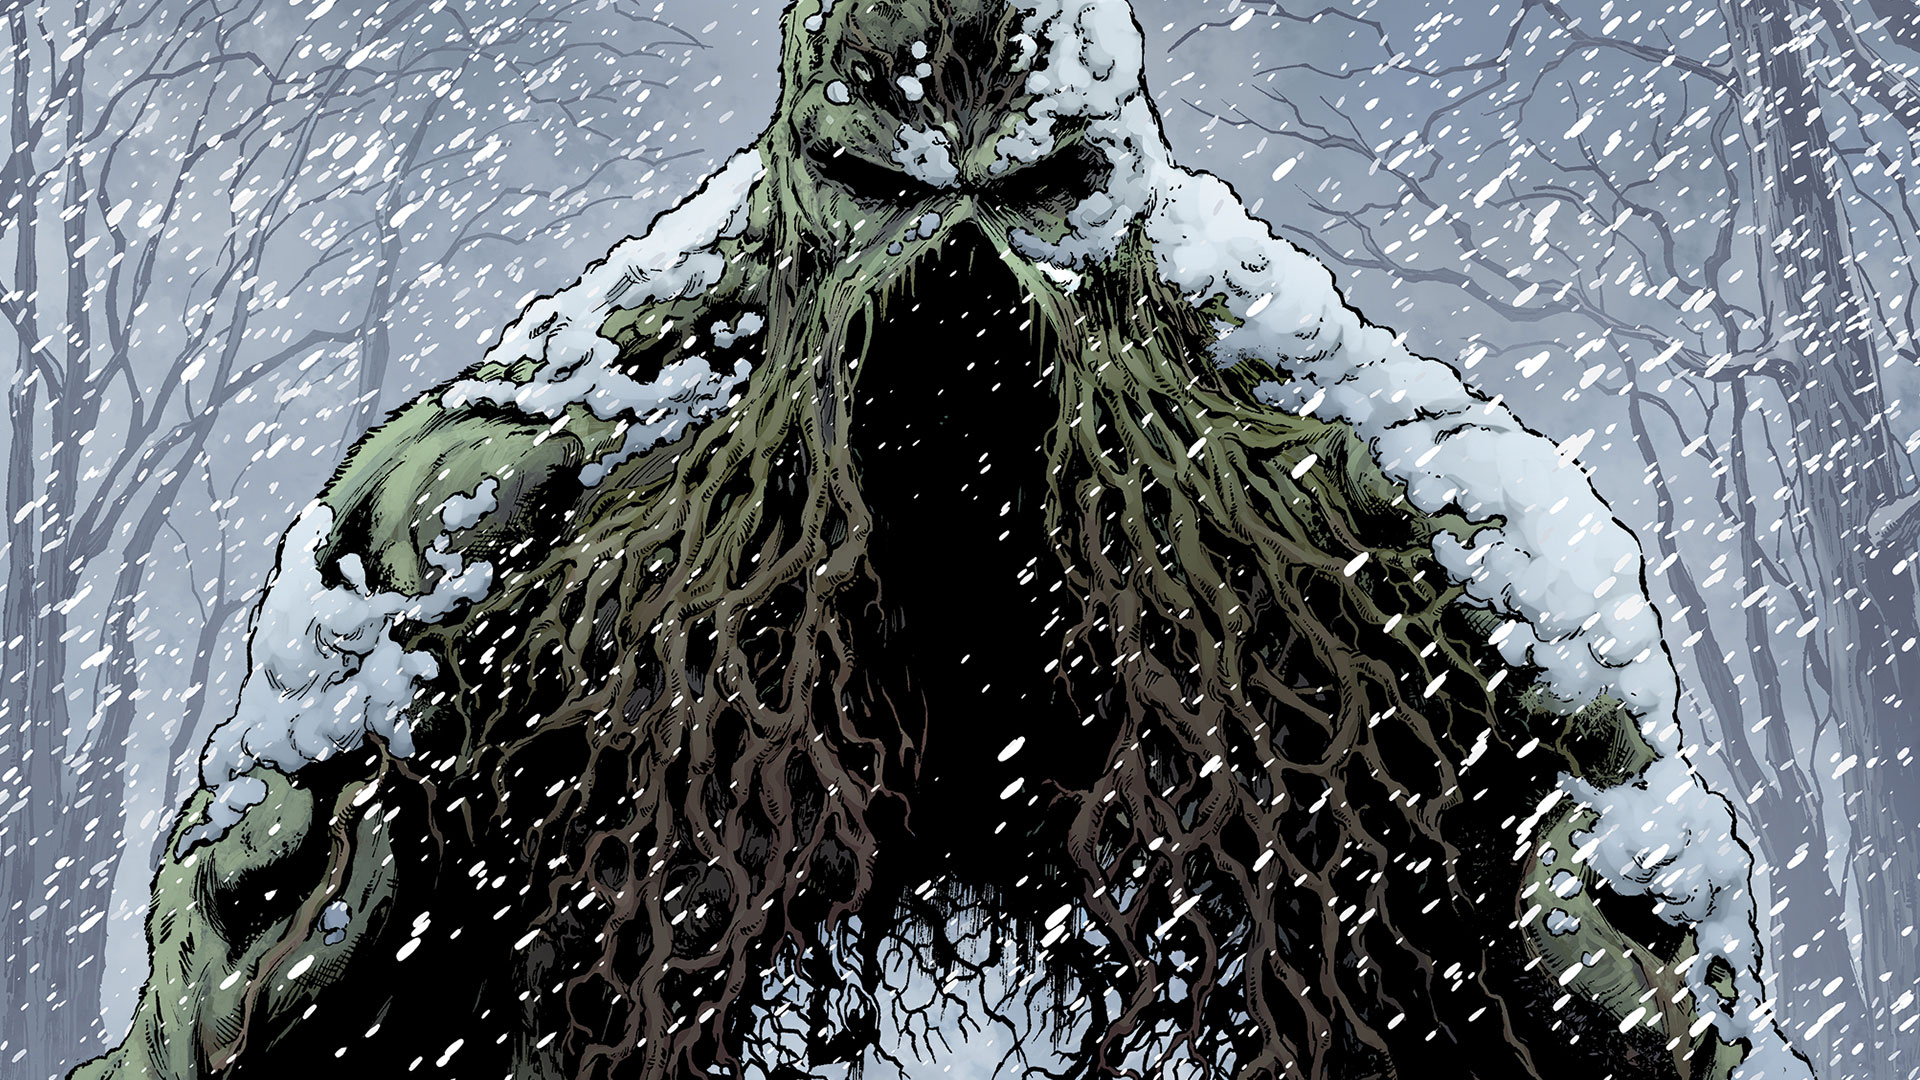 Swamp Thing Winter Special #1 Review: A Beautiful Send-Off